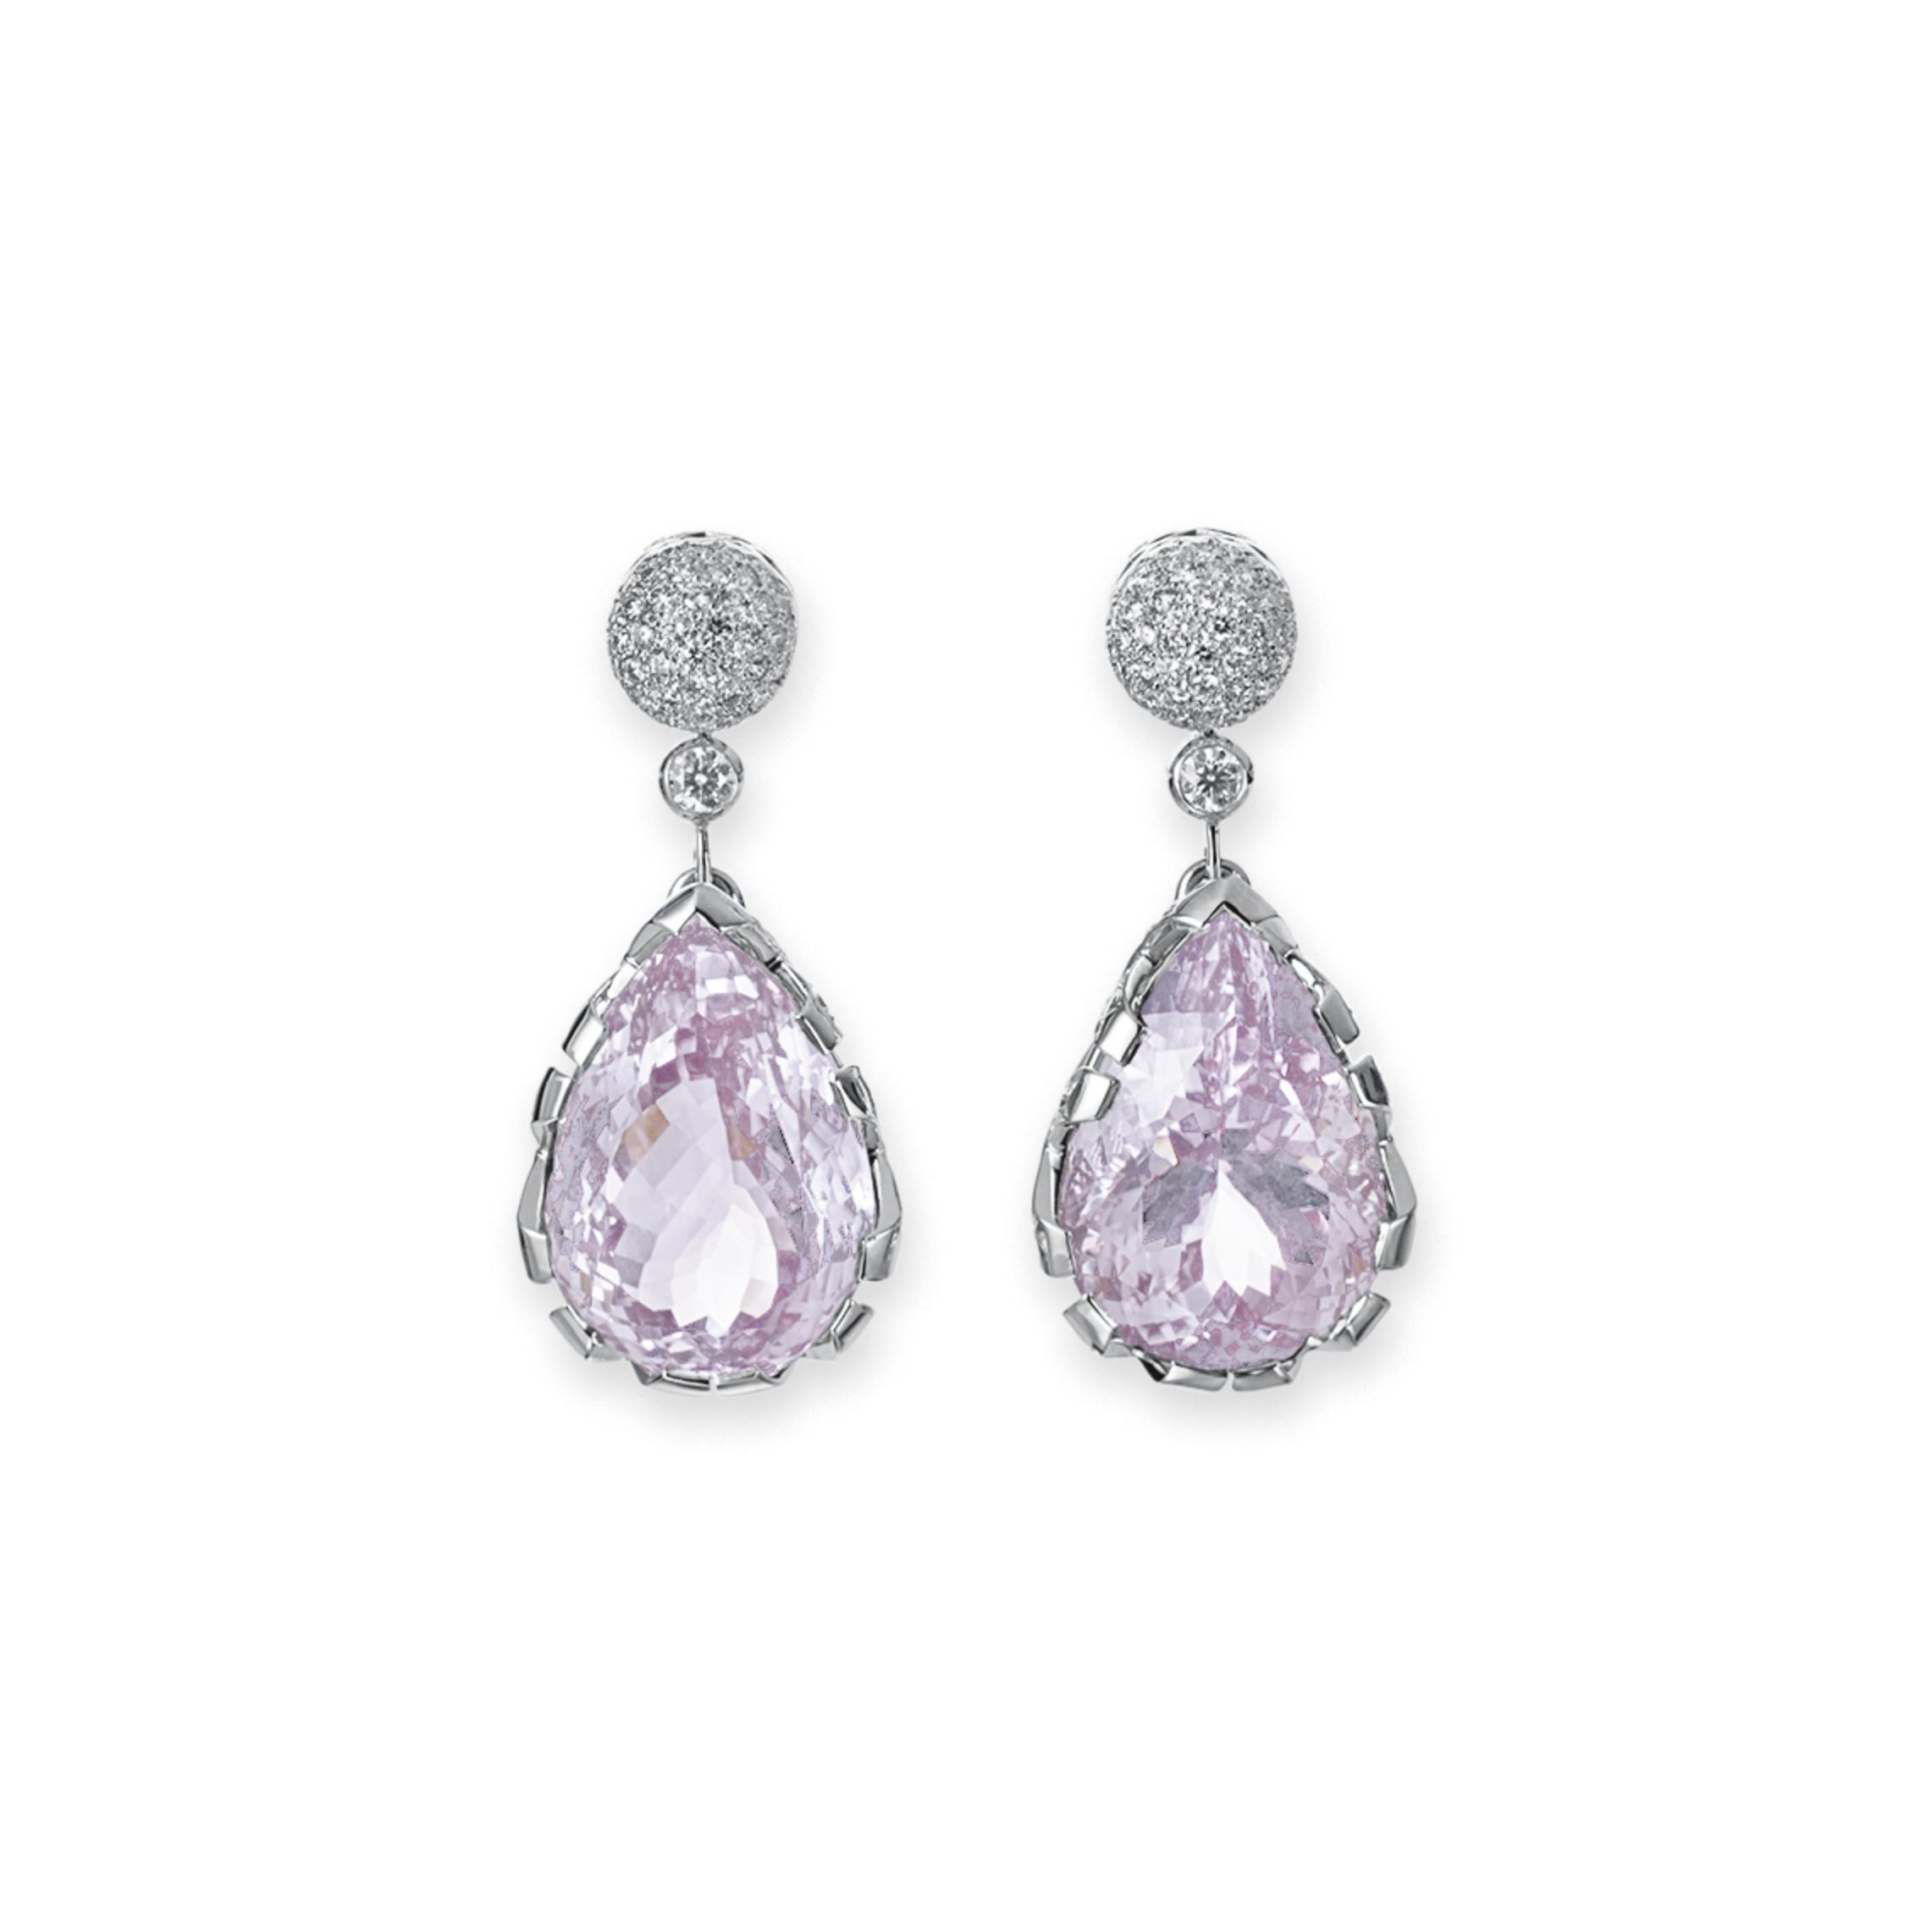 white kunzite your observer design to rose earrings purchase new with info vartanian in the game and brown newest karat hook diamonds ara s step contact earring designers up gold com aravartanian br jewelry